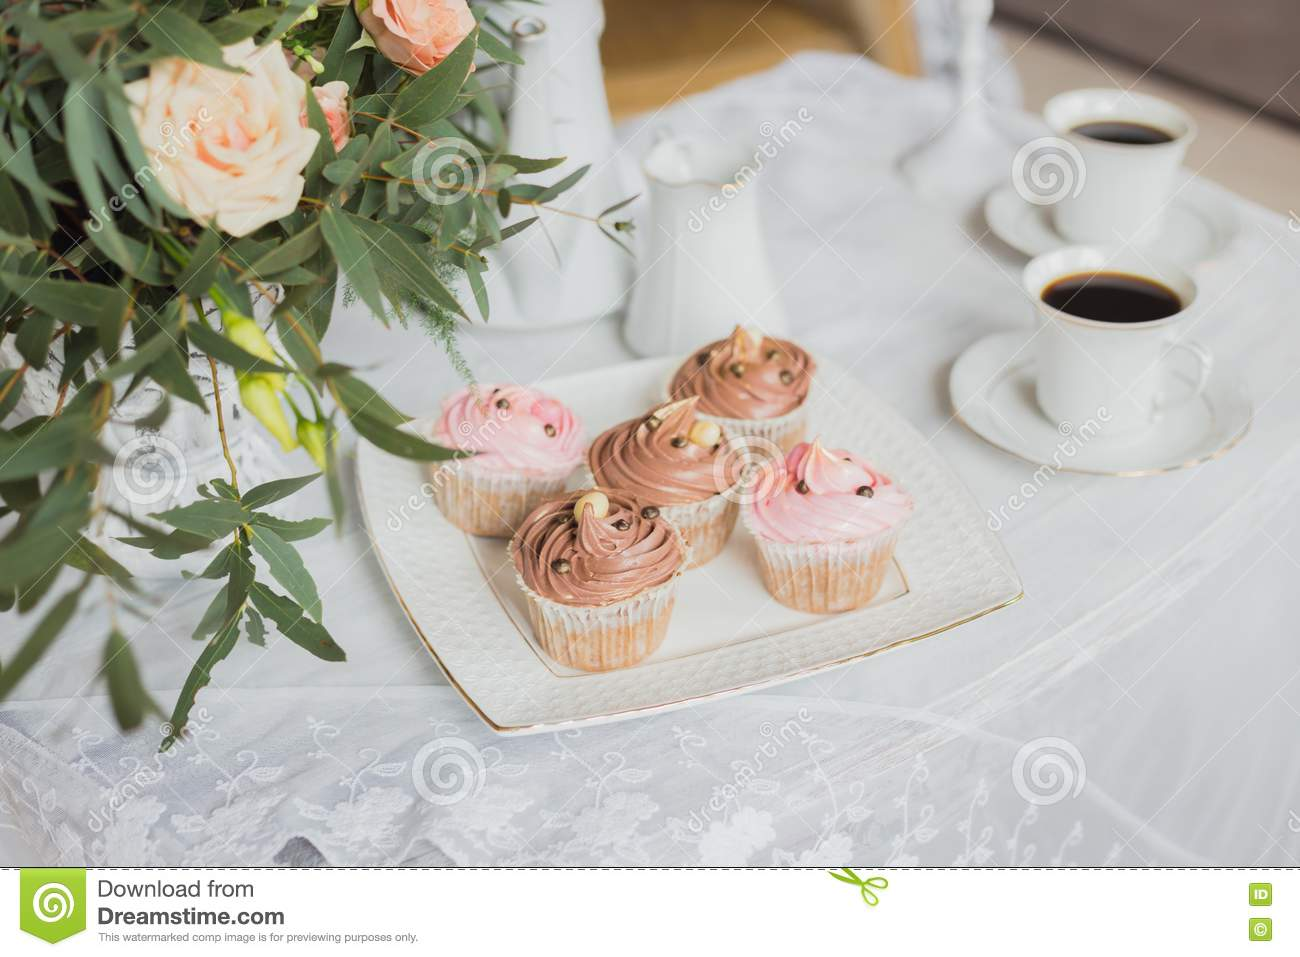 Wedding Decorations Zone - White Table With Bouquet And Cupcakes ...